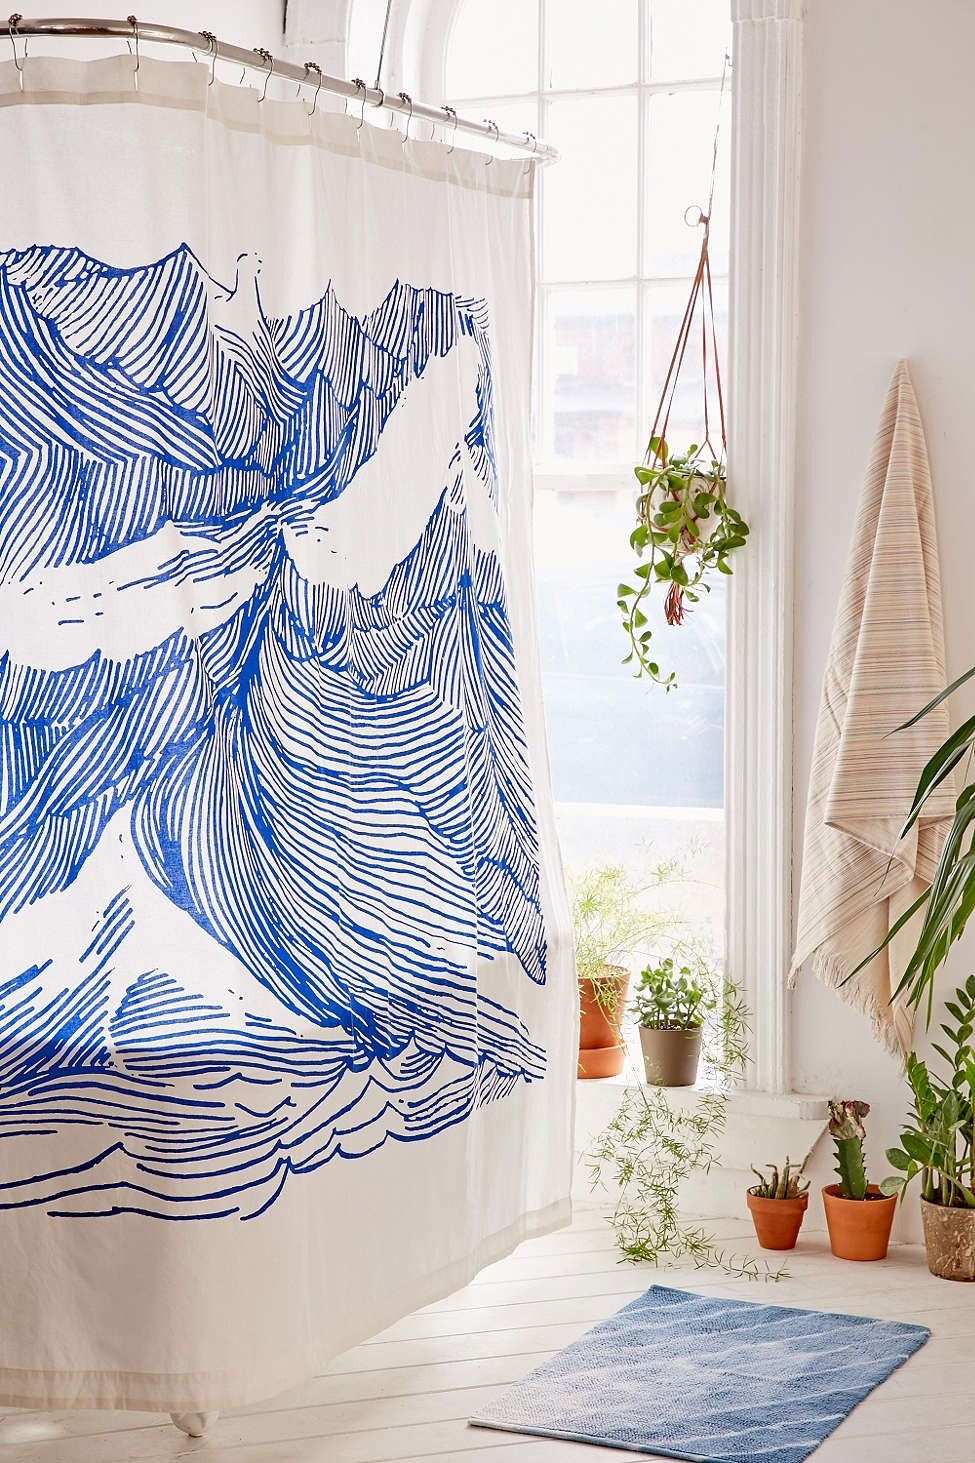 Urban Outfitters Home On Instagram A Macrame Shower Curtain For